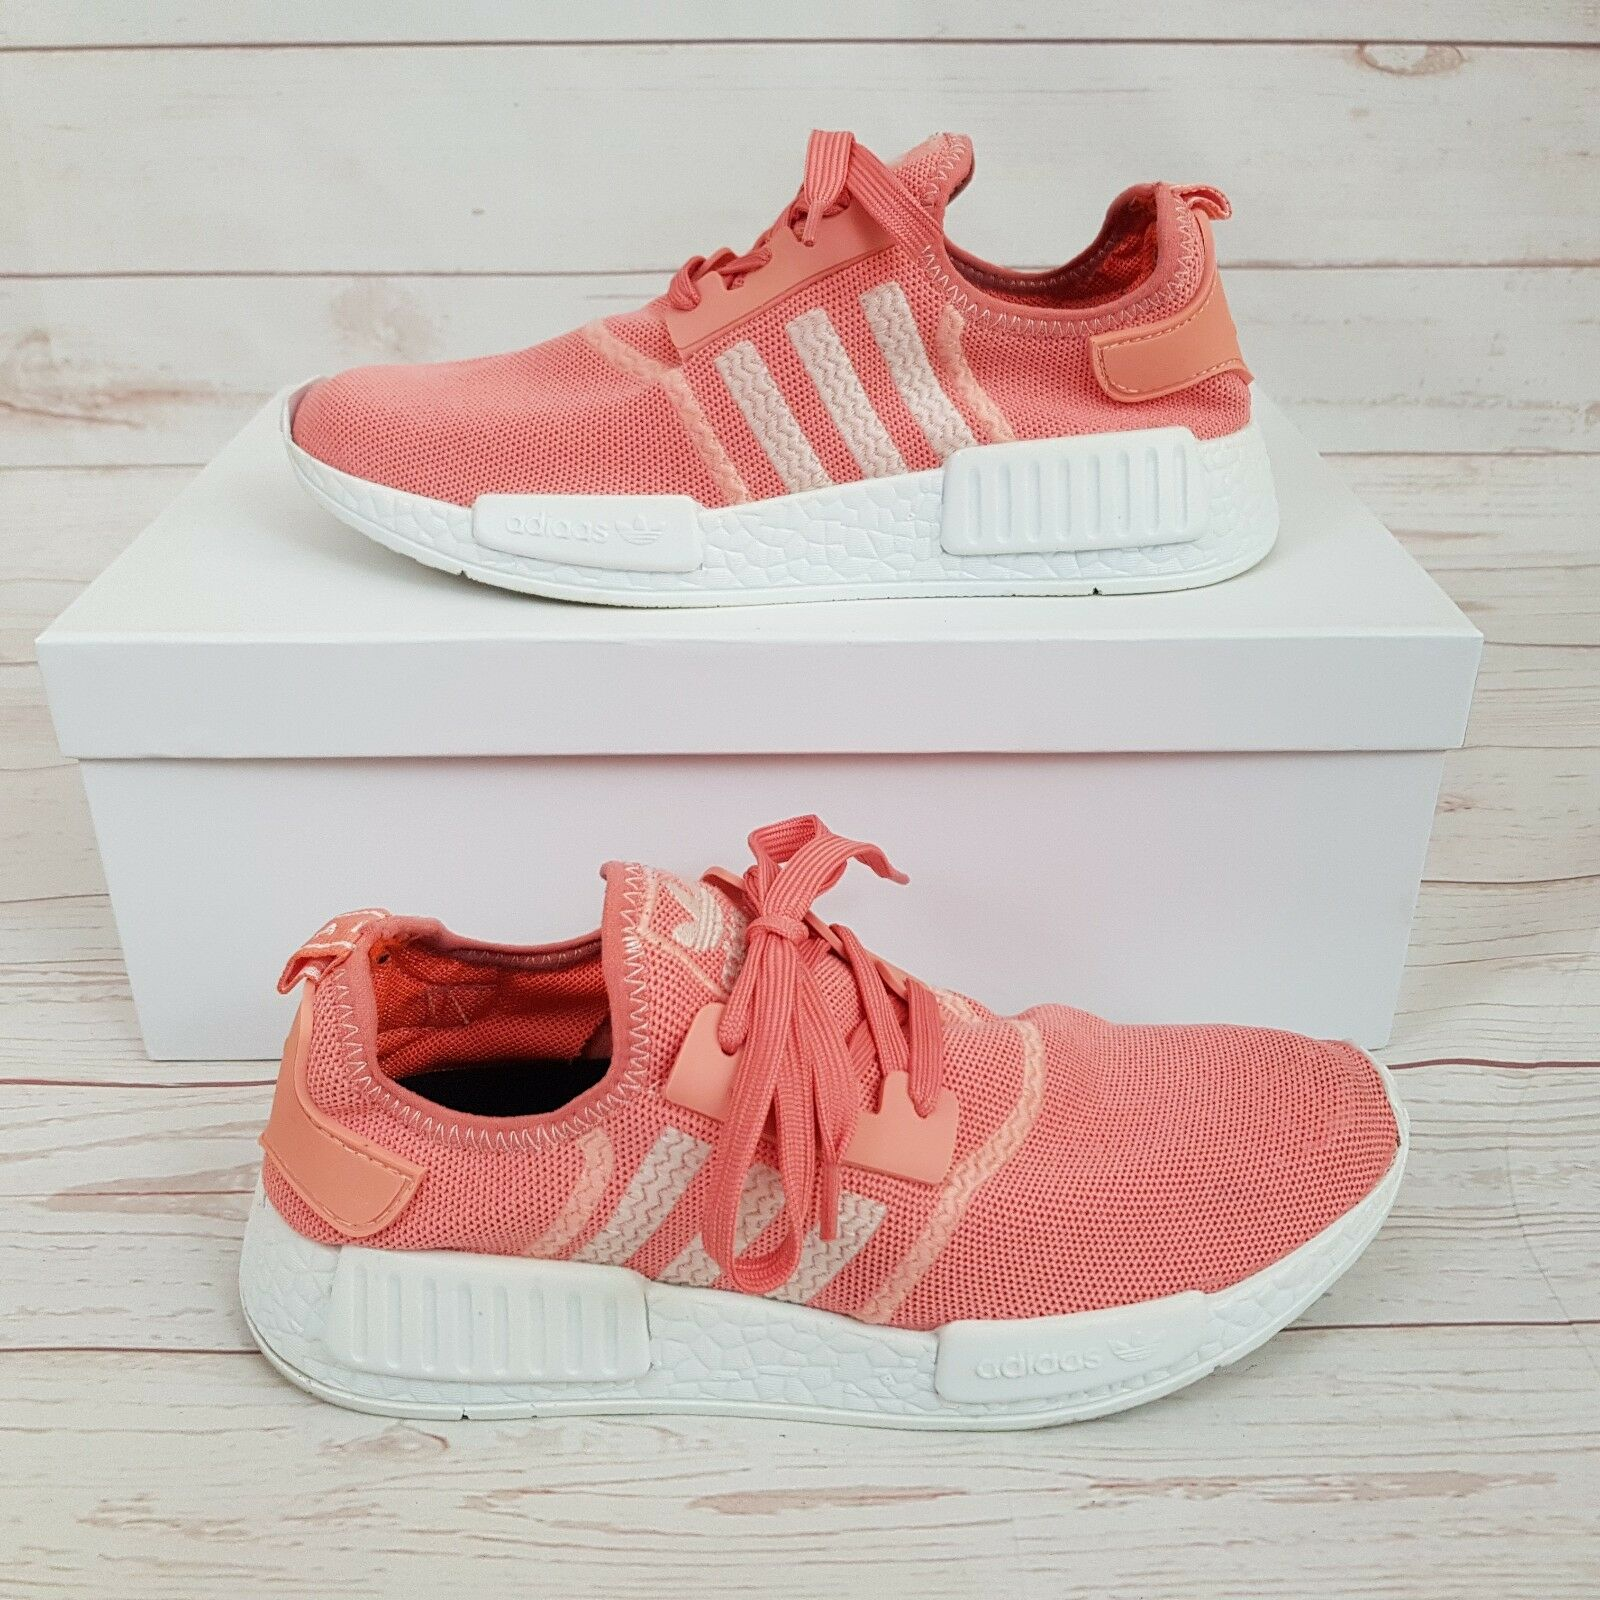 Adidas Womens NMD Raw Salmon orange Pink Lace Up Trainers UK 5.5